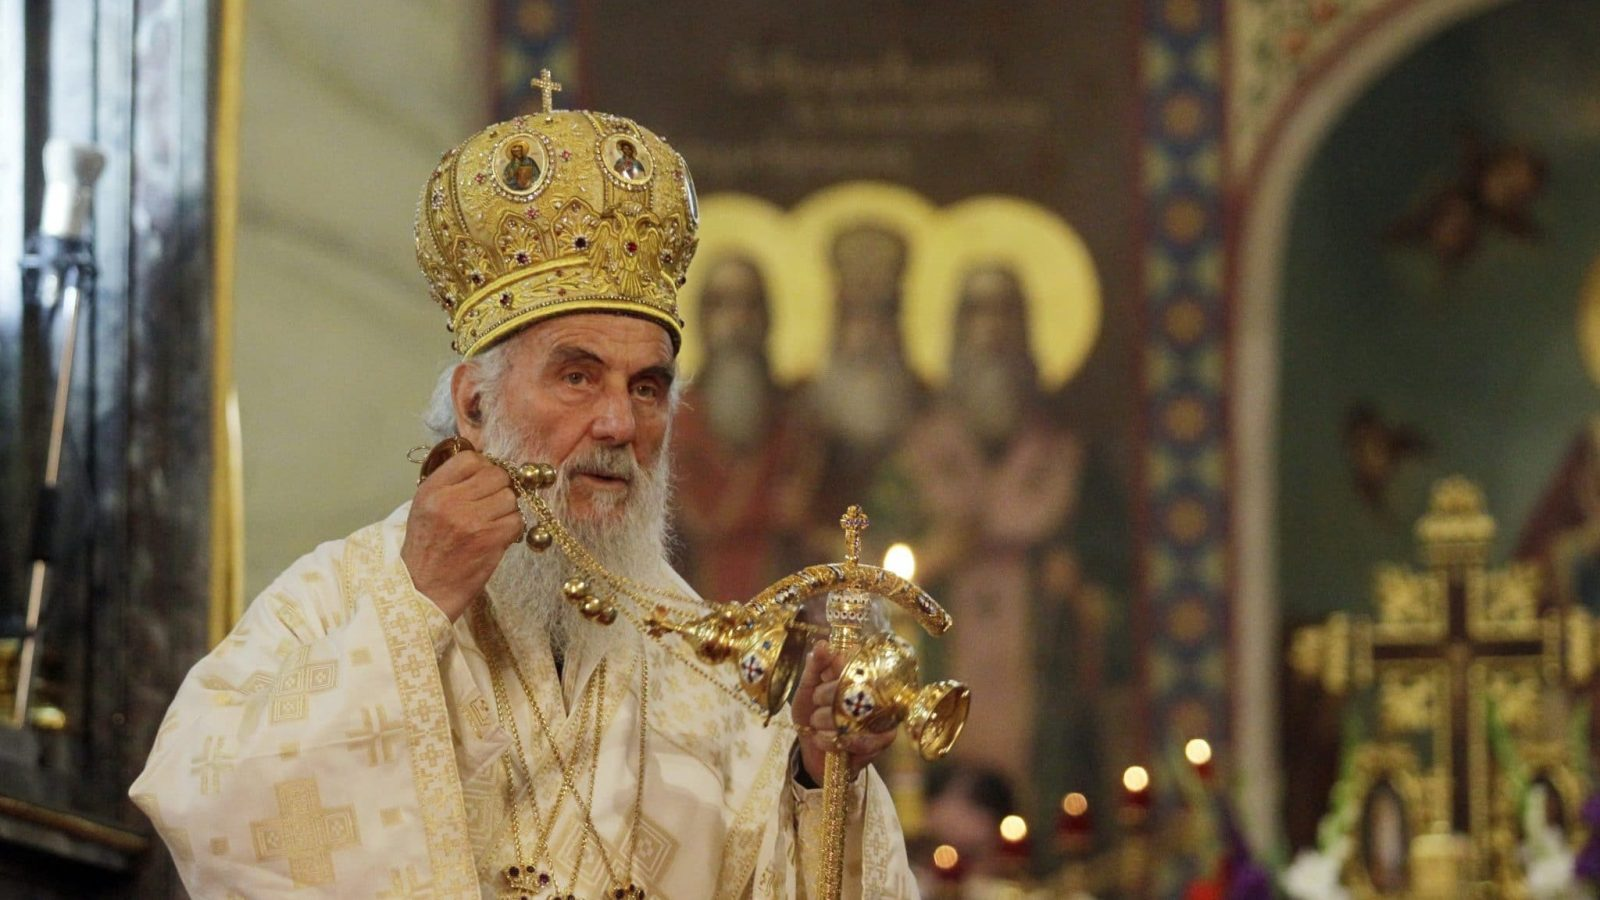 Serbs Should Mourn Quiet Patriarch Who Avoided Conflict